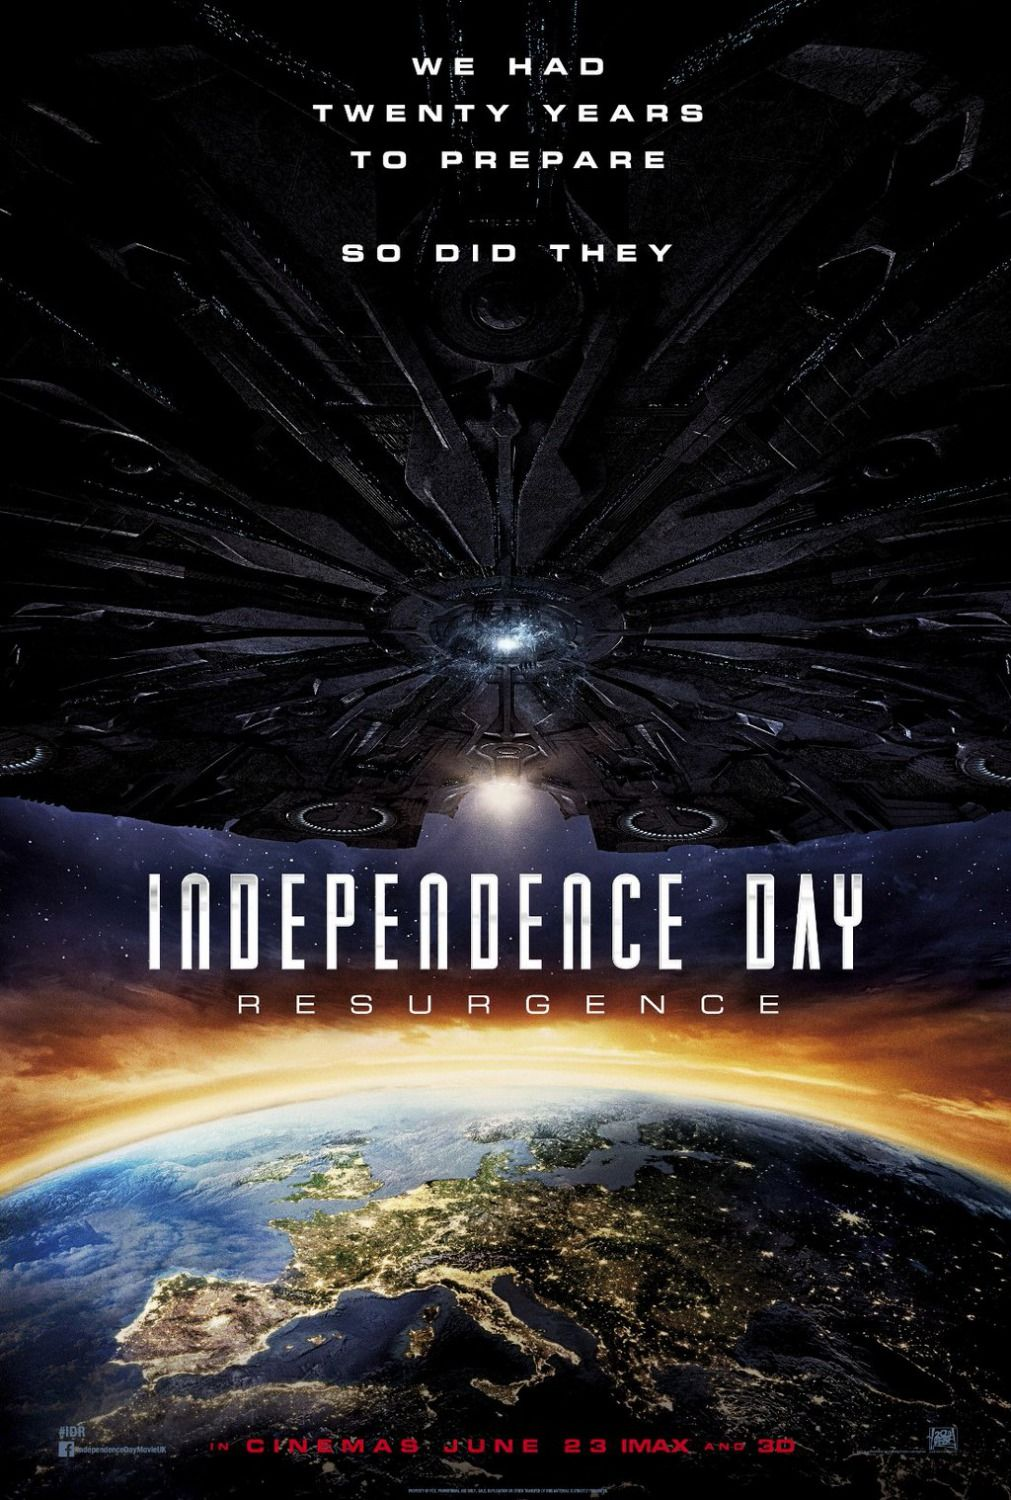 Independence Day Resurgence Extra Large Movie Poster Image Internet Movie Poster Awards Gallery Free Movies Online Good Movies Full Movies Online Free